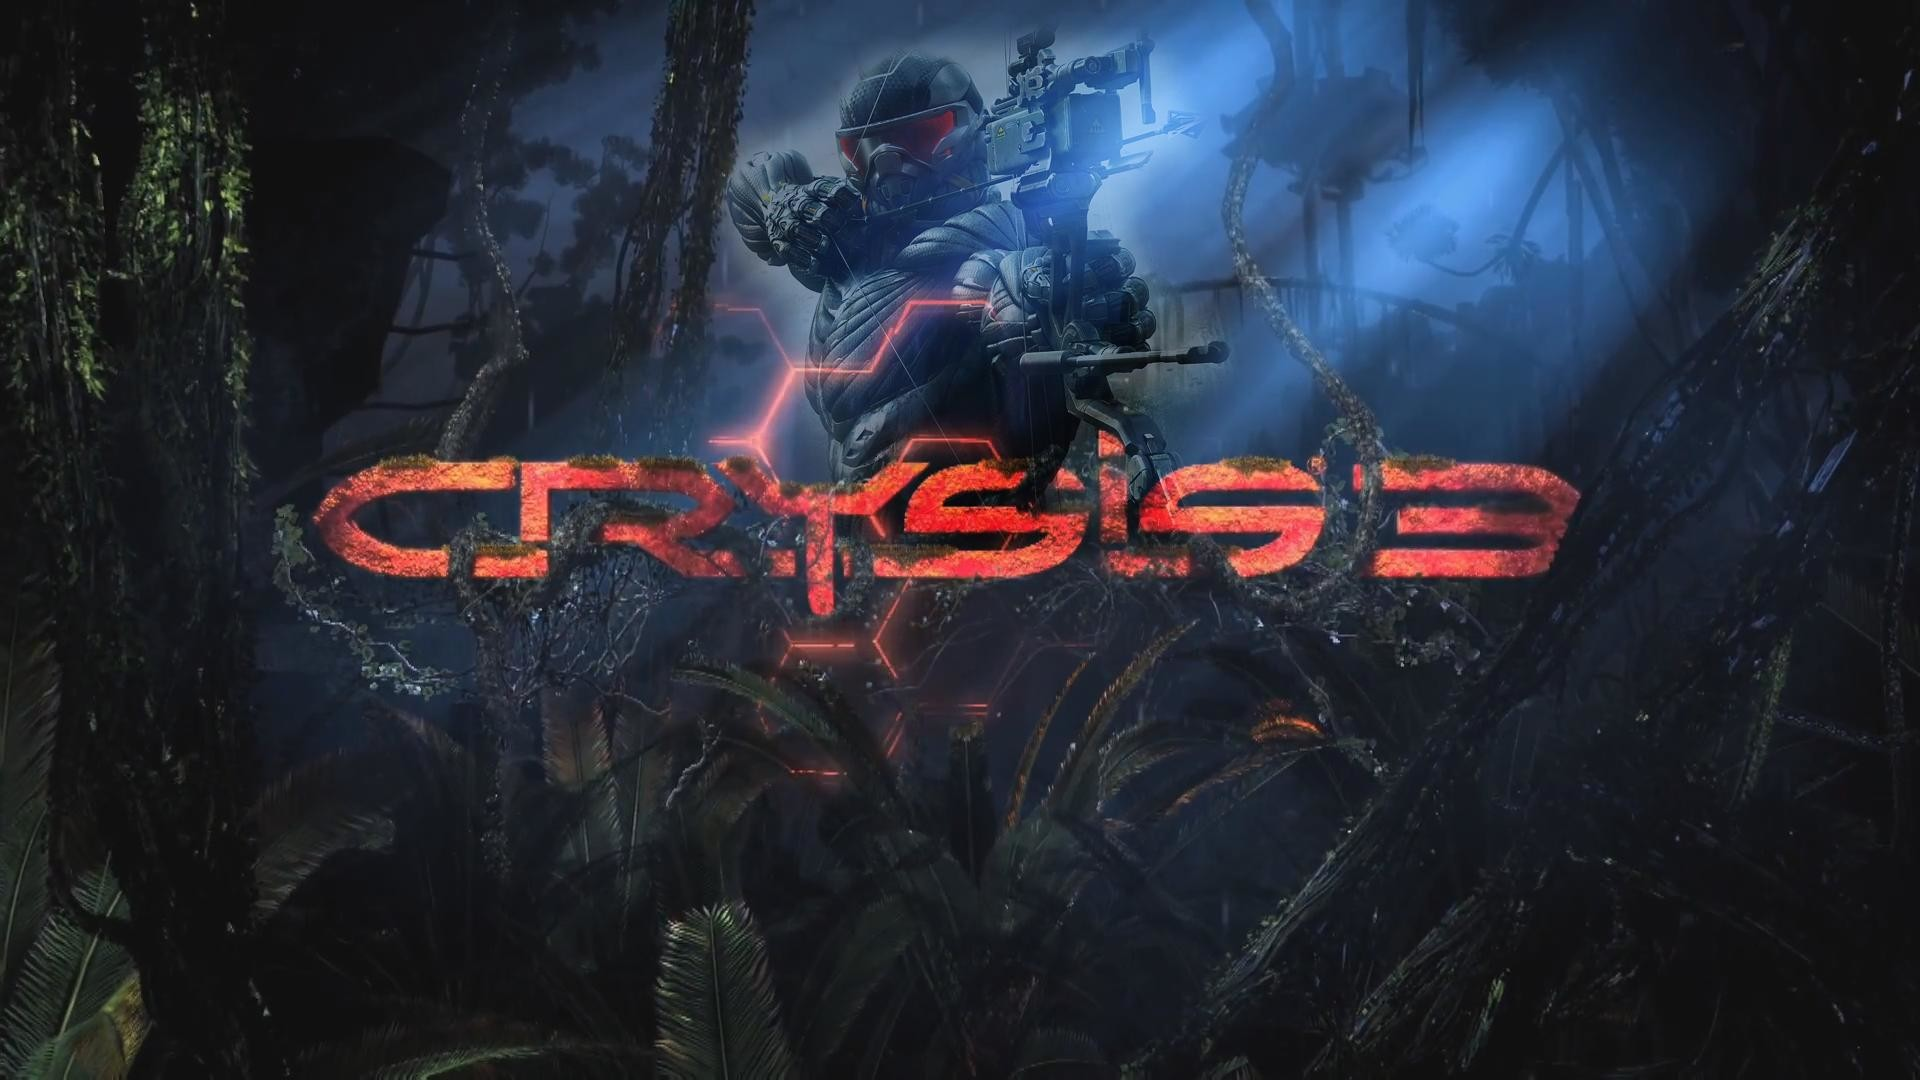 1920x1080 Crysis 3 Wallpapers - Wallpaper Cave